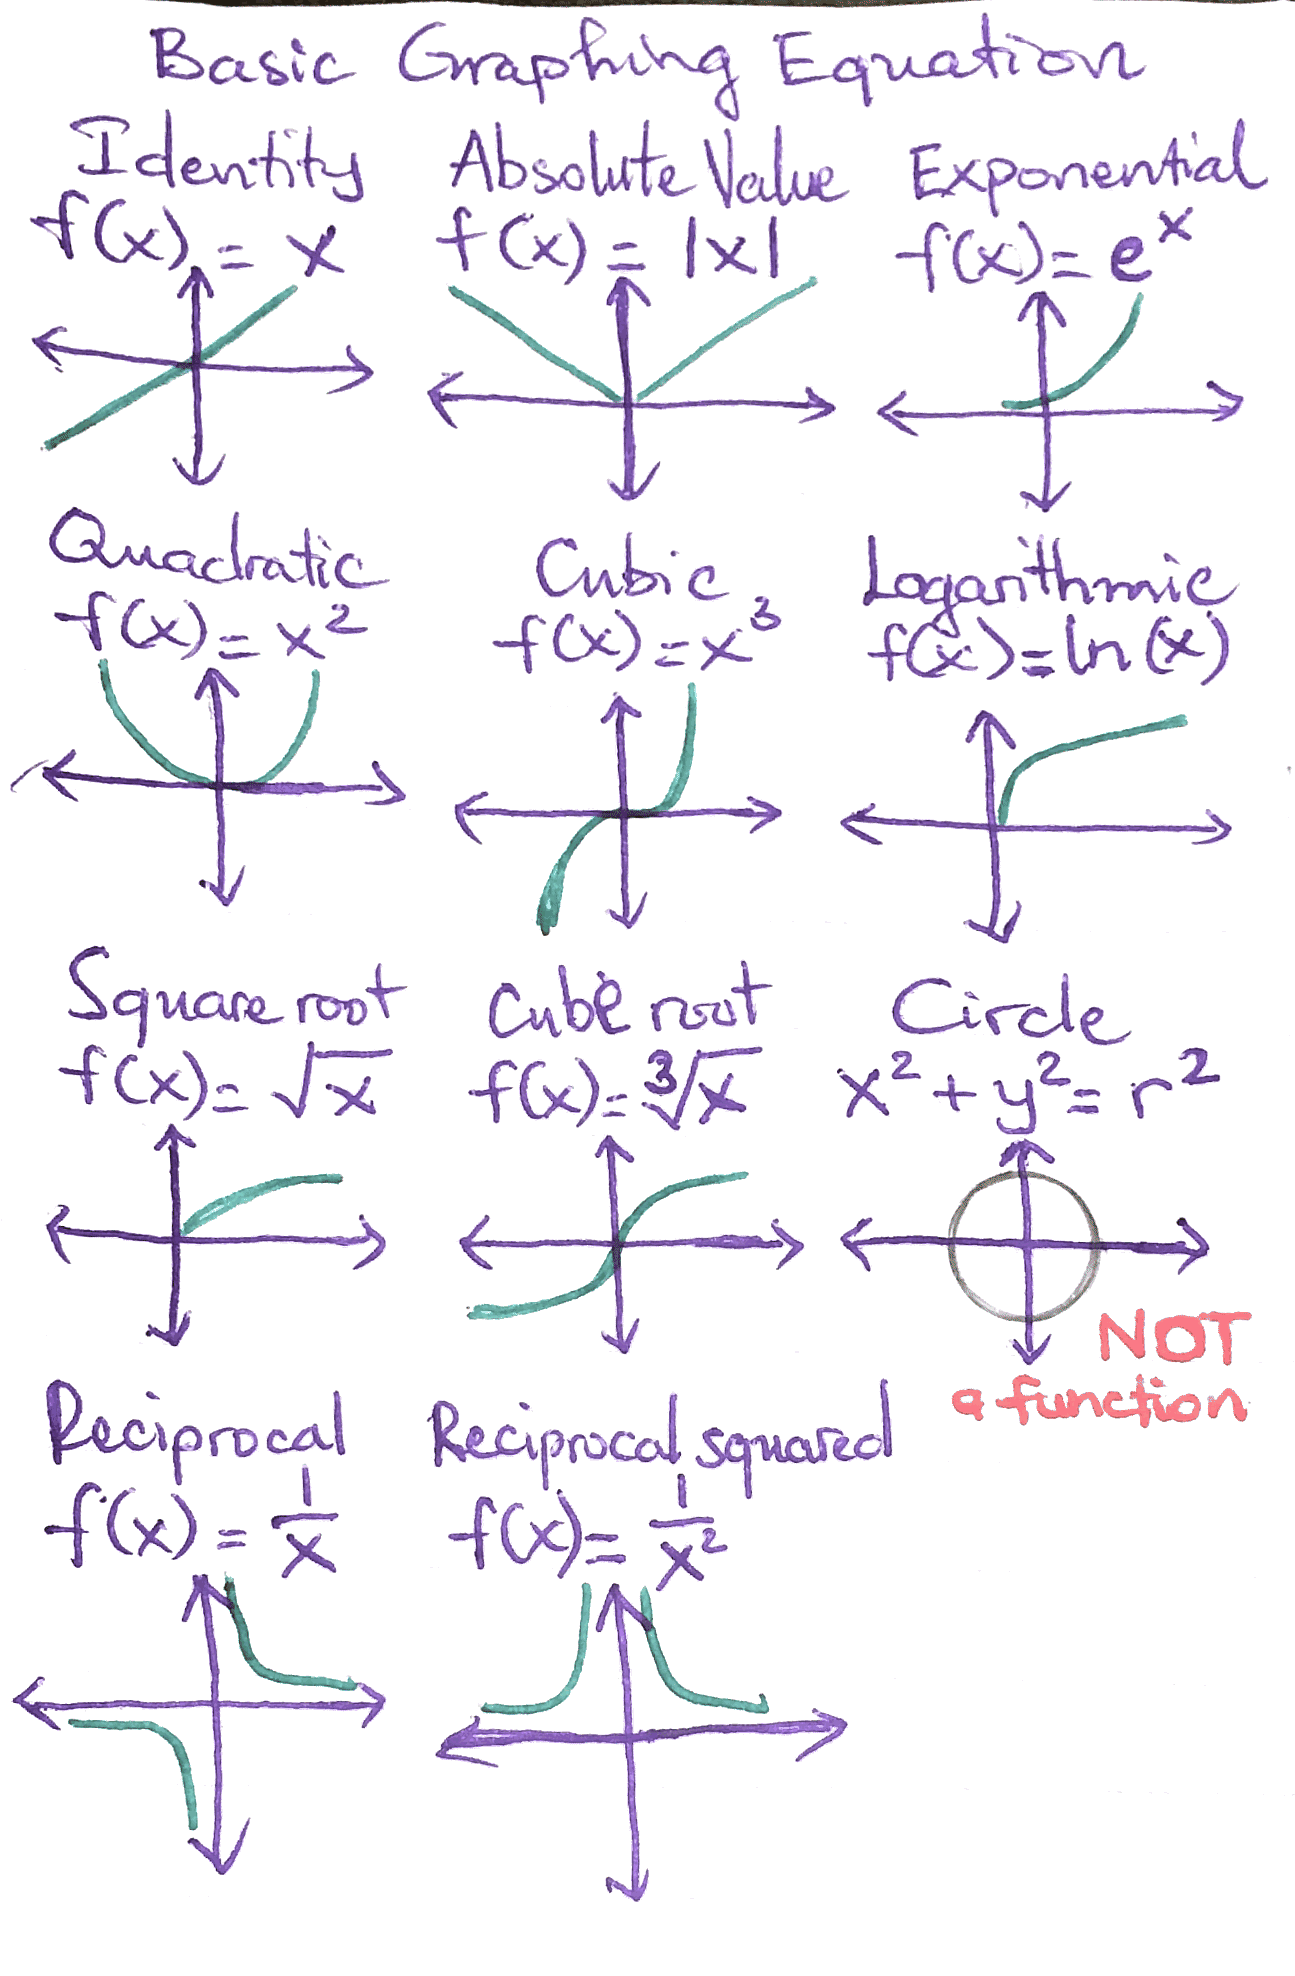 medium resolution of Basic Graphing Equations for Math 141 of GRC.   Basic math